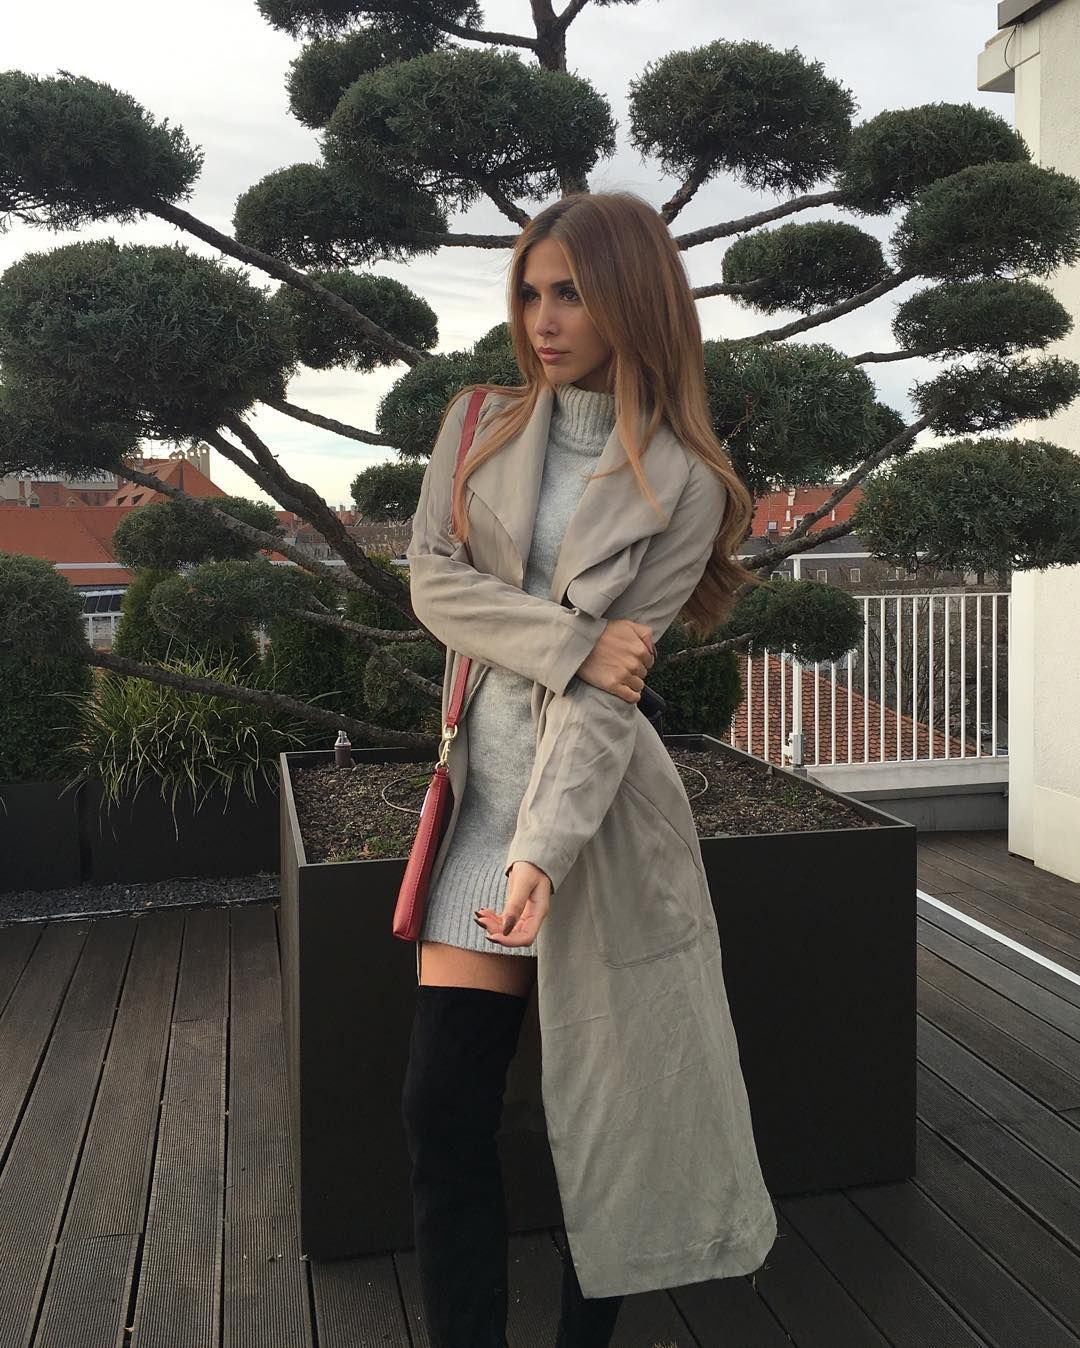 Annkathrin Vida Brommel On Instagram Here S A Pre Christmas Gift For You Win A 200 Voucher Of Www Edited De And Create The Same Frau Frauen Frisuren Outfit